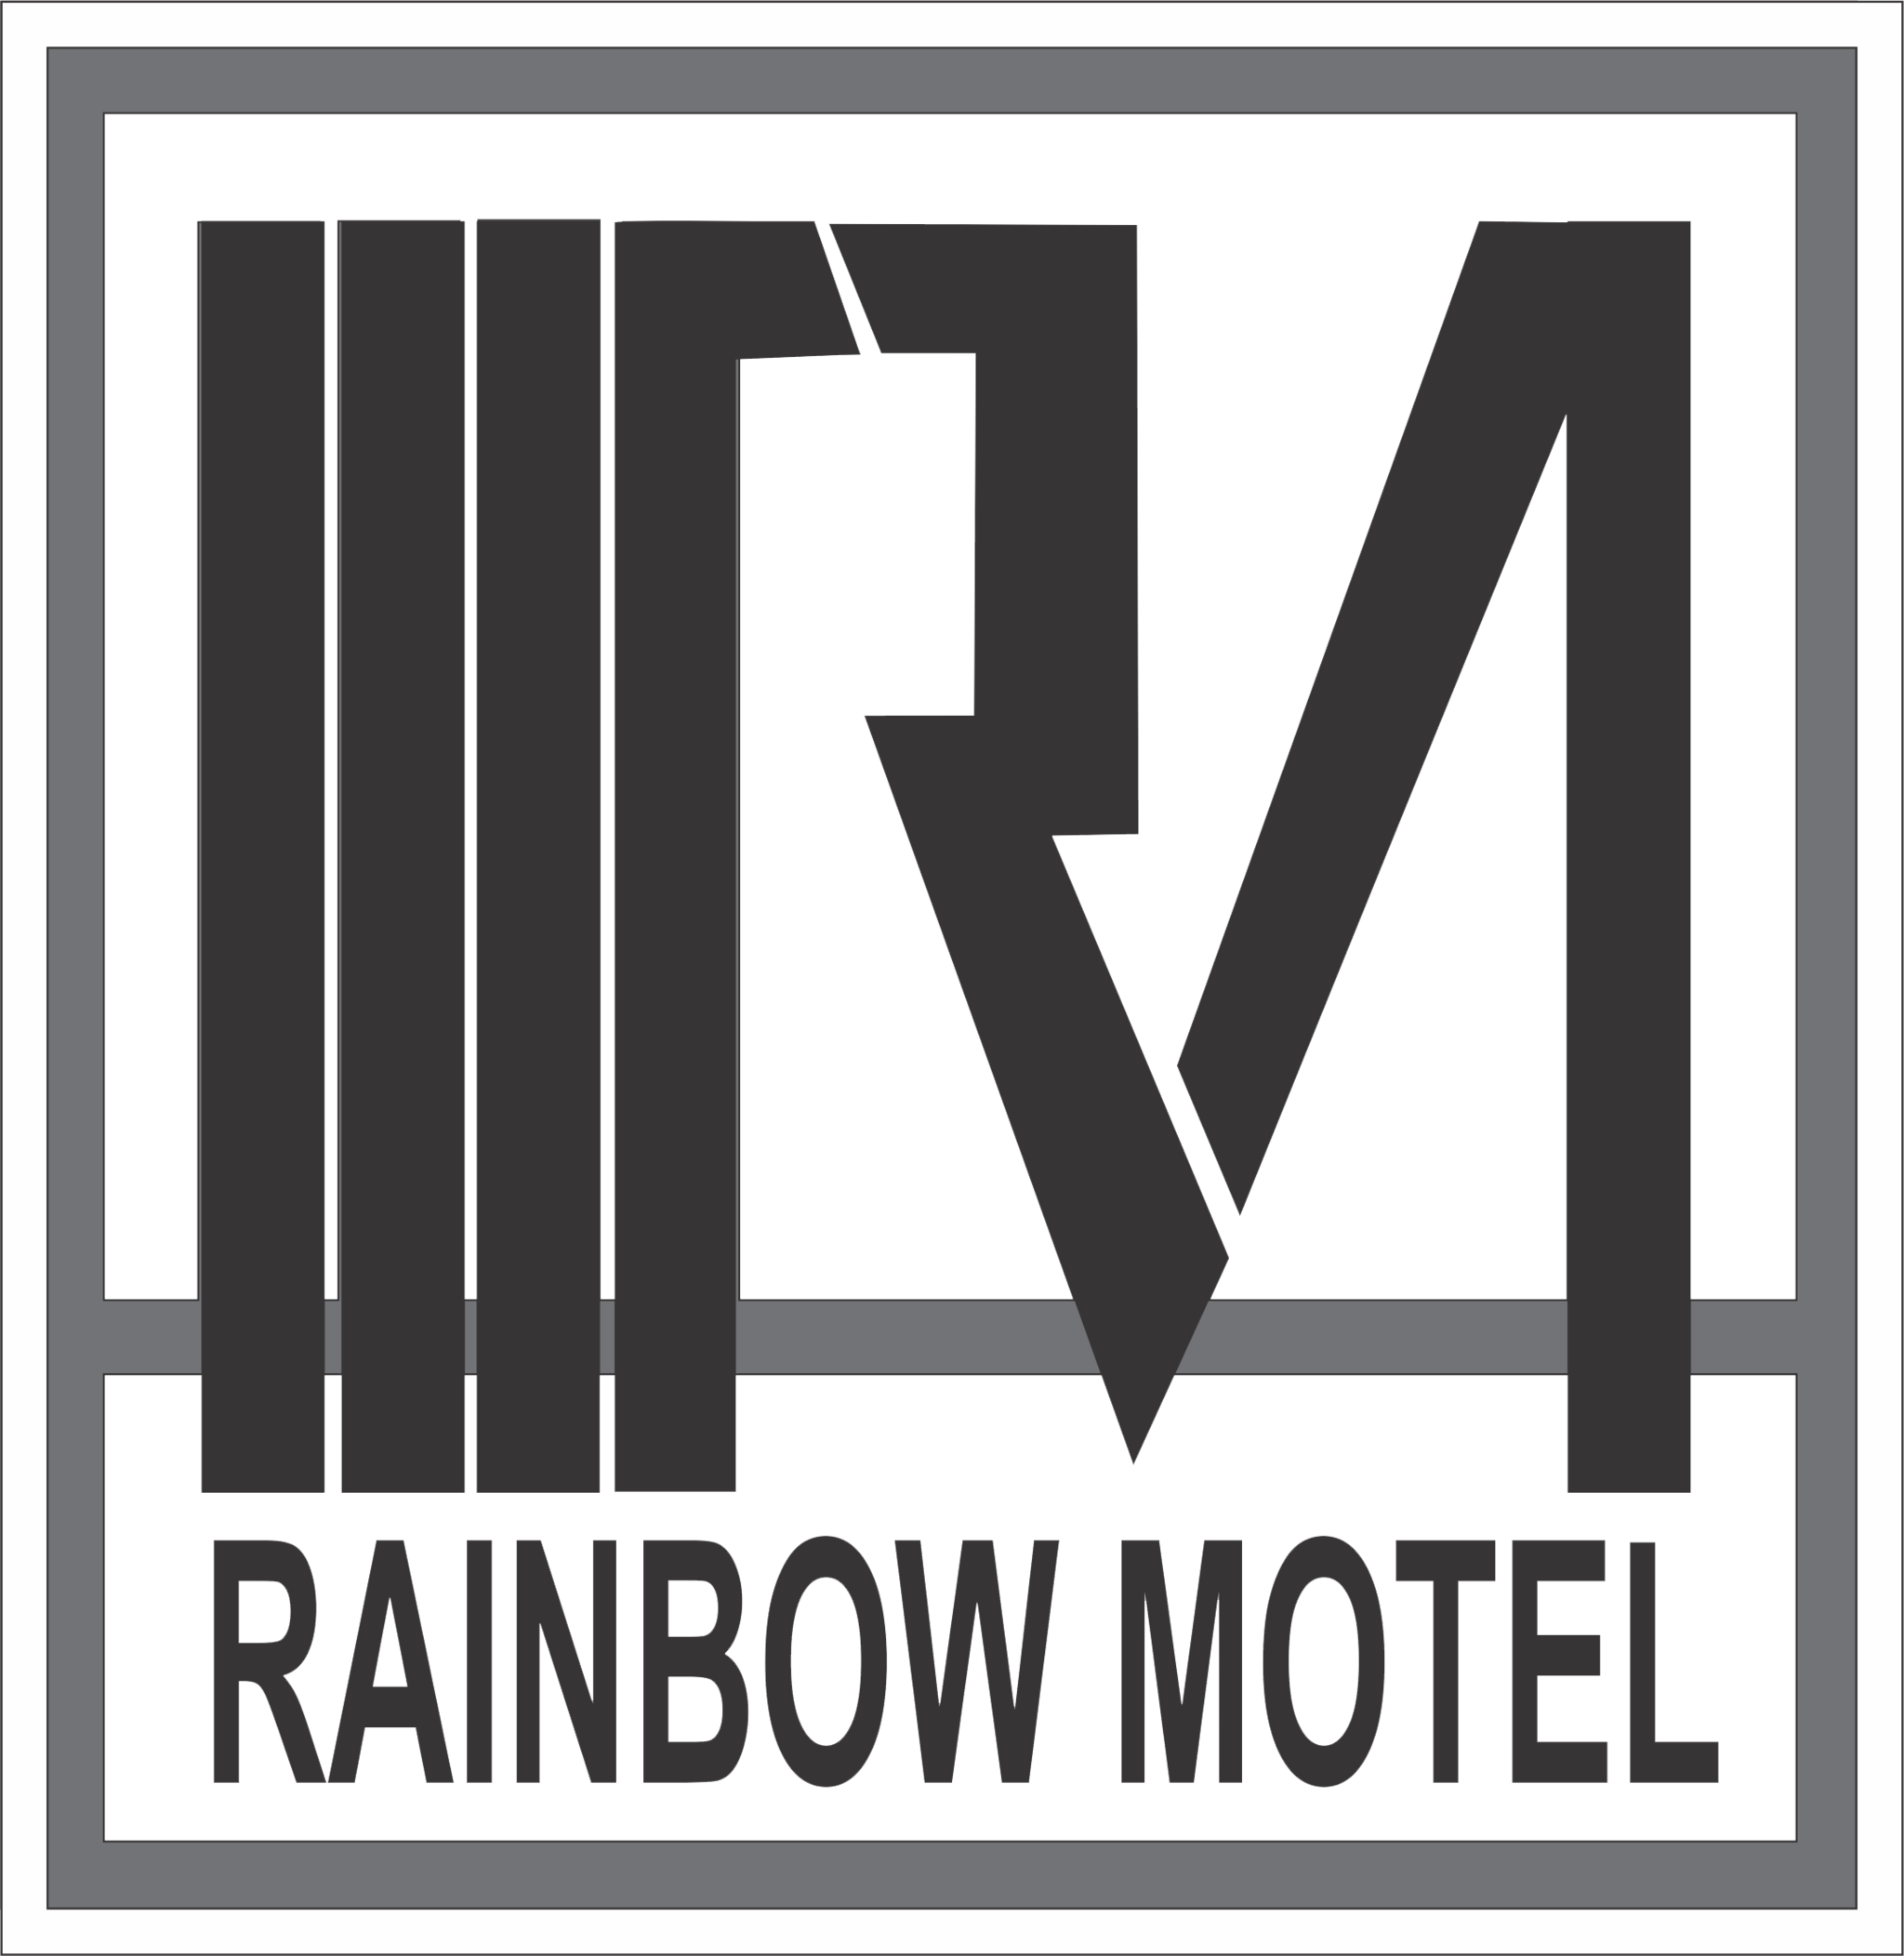 Rainbow Motel (Adult Only)